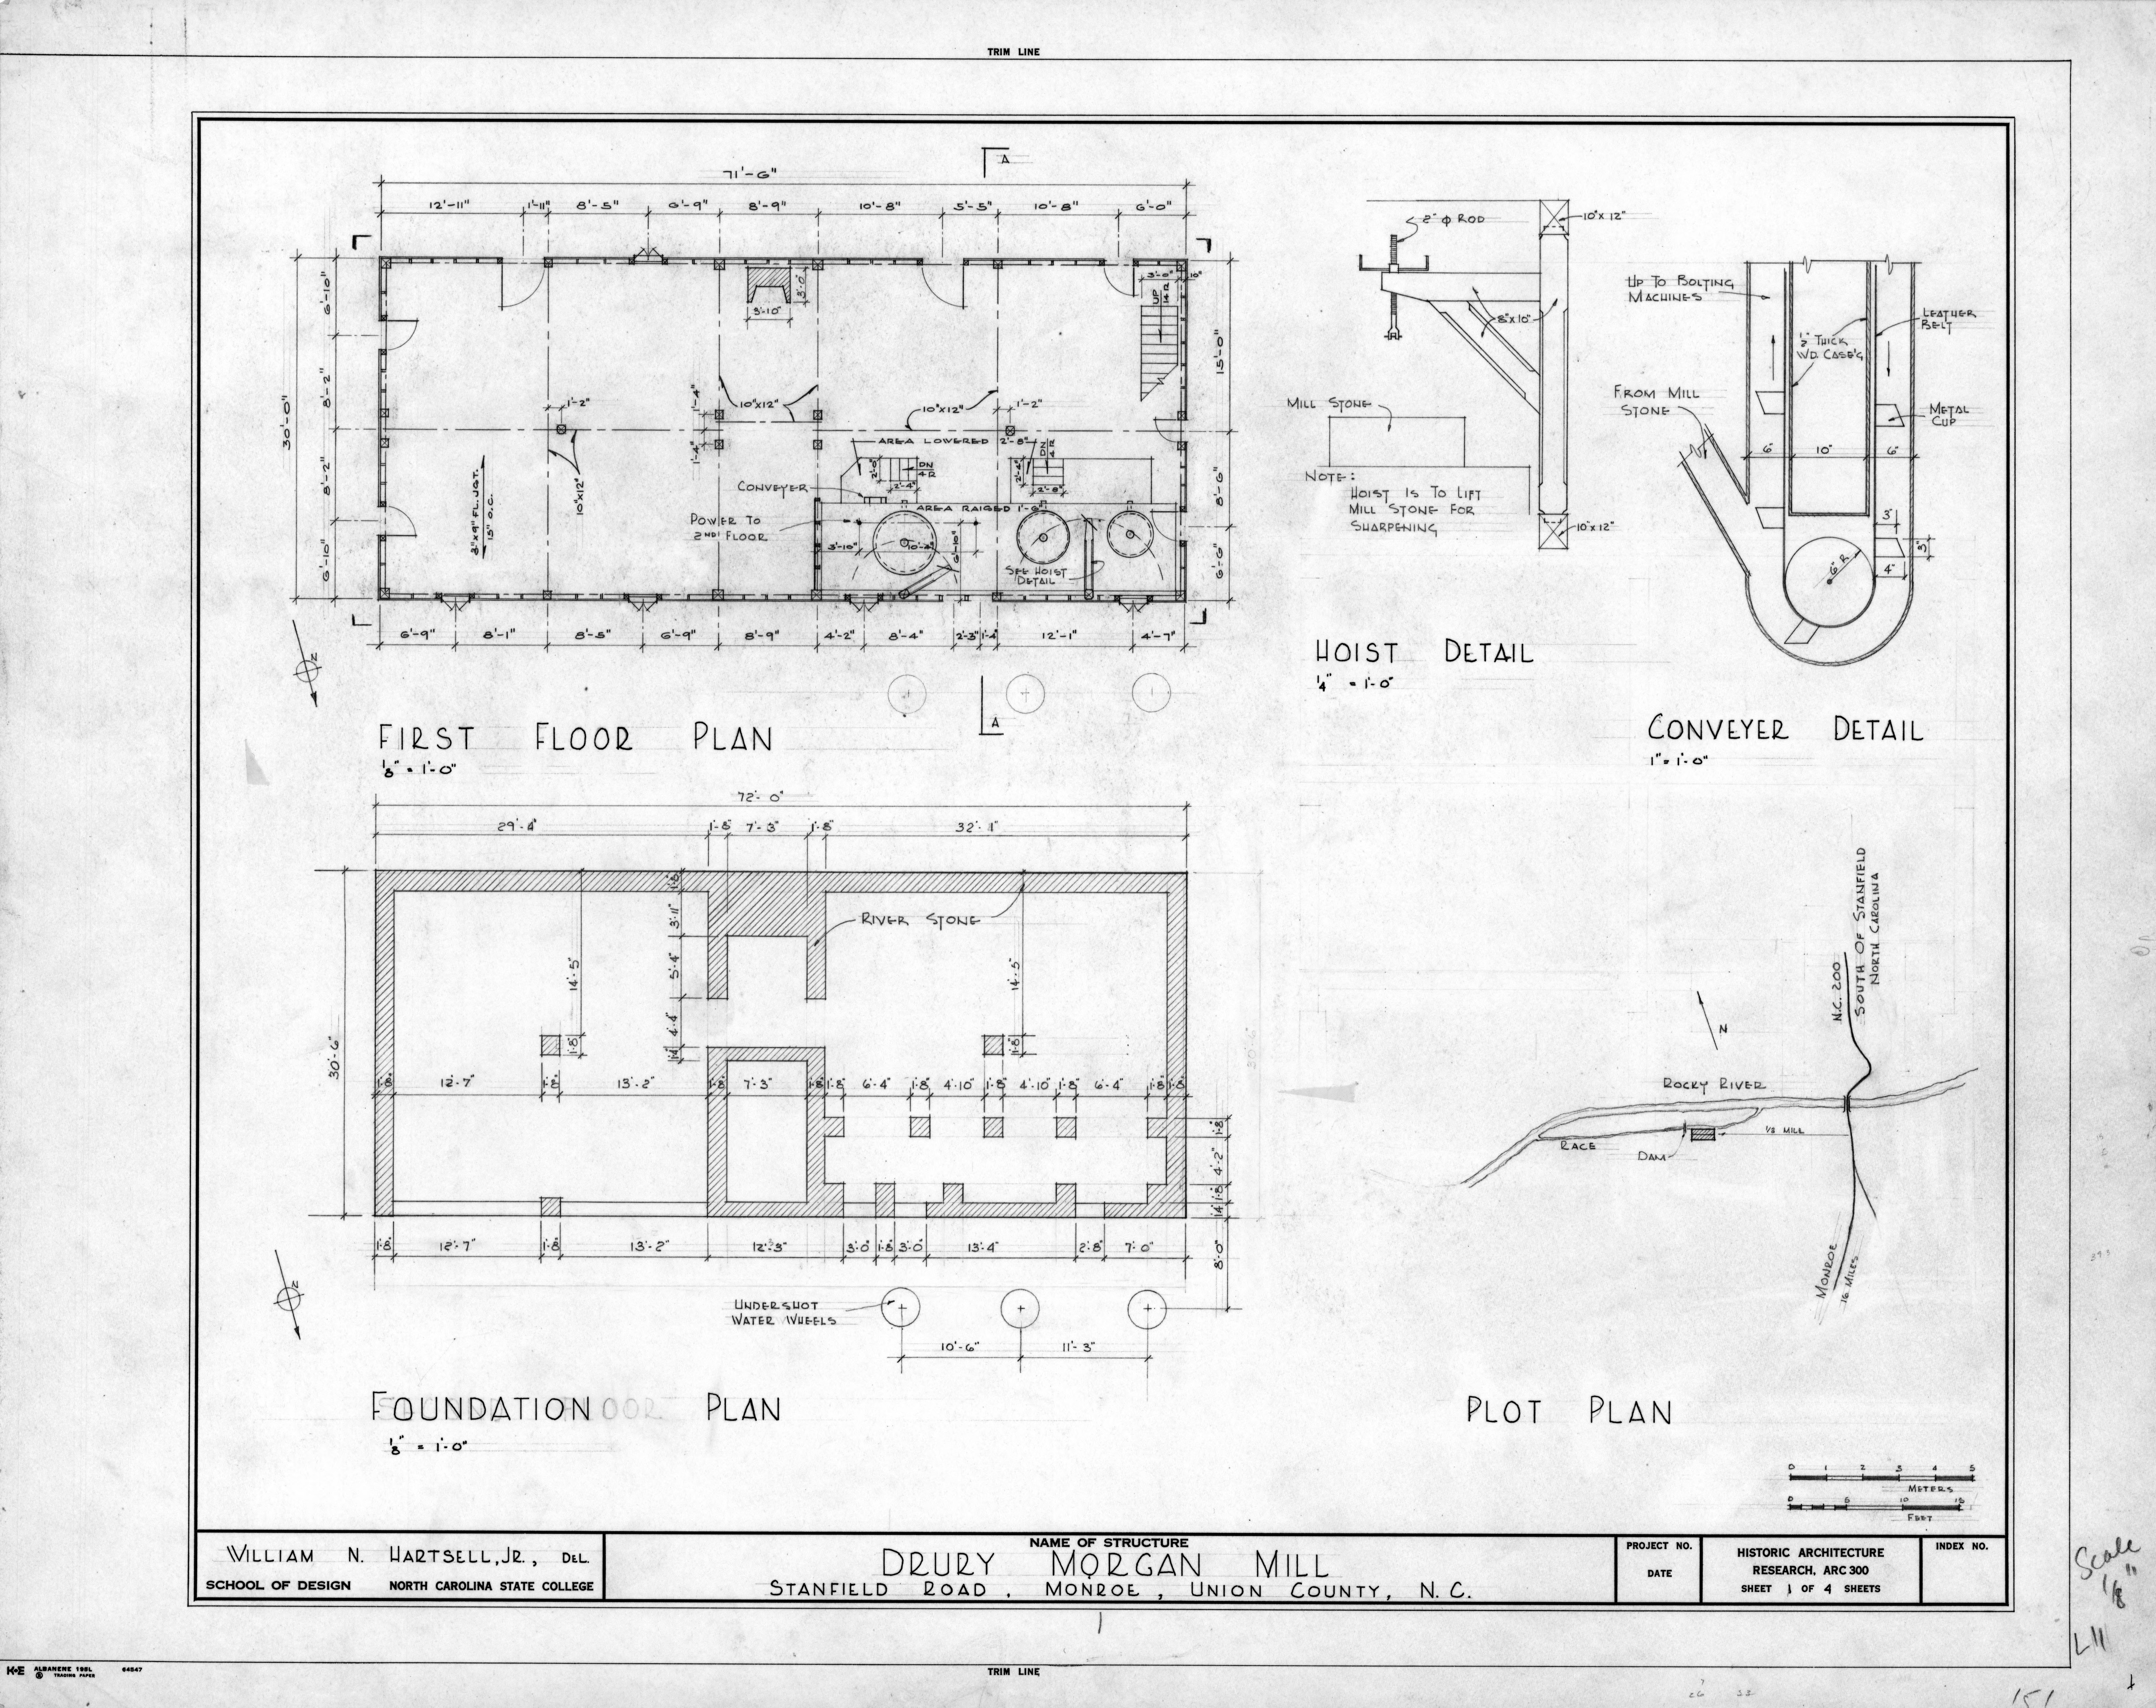 Floor plan foundation plan site plan and detail drury for Foundation plan